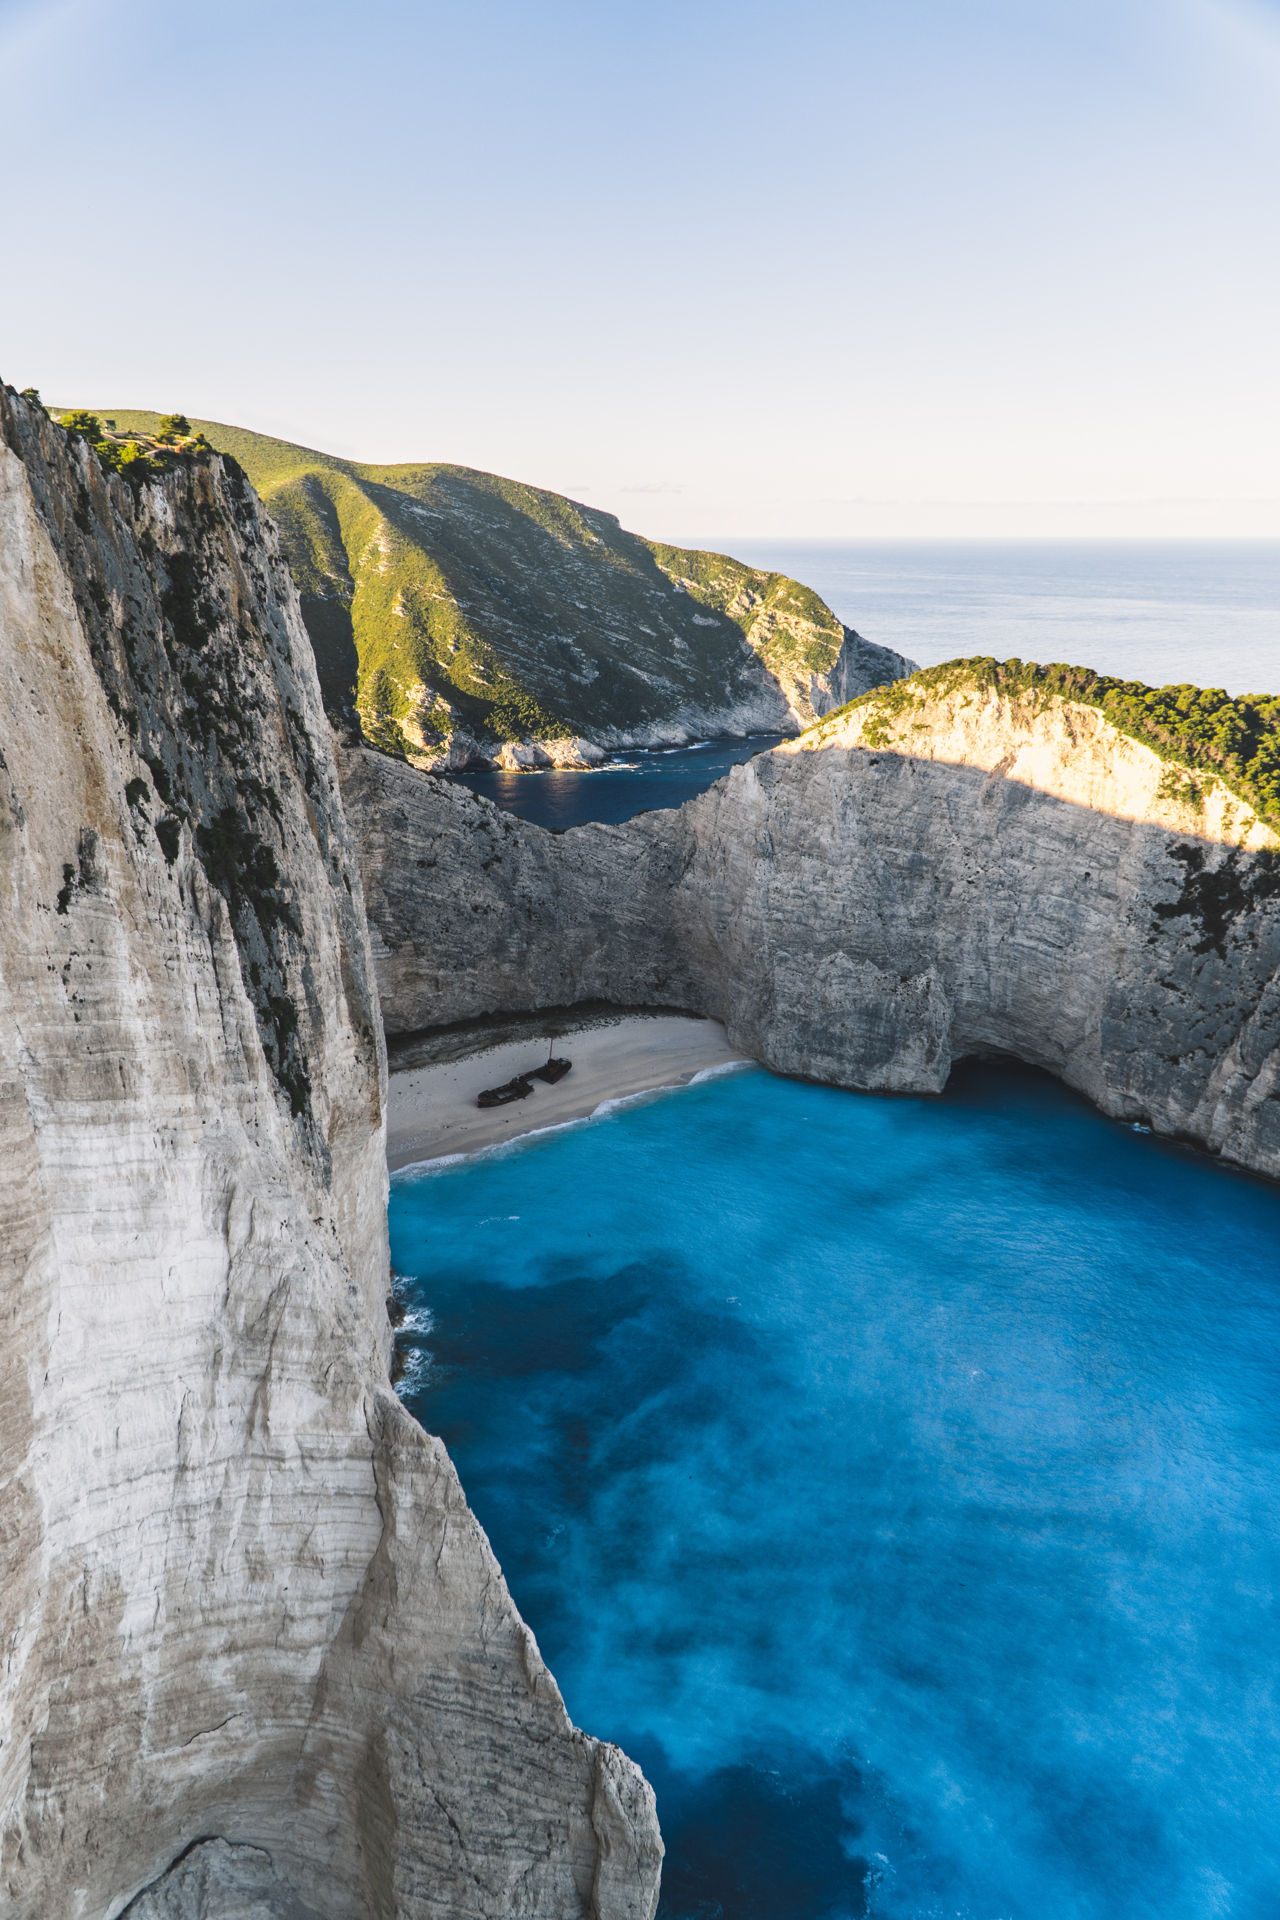 The water in Navagio often radiates impossible shades of blue